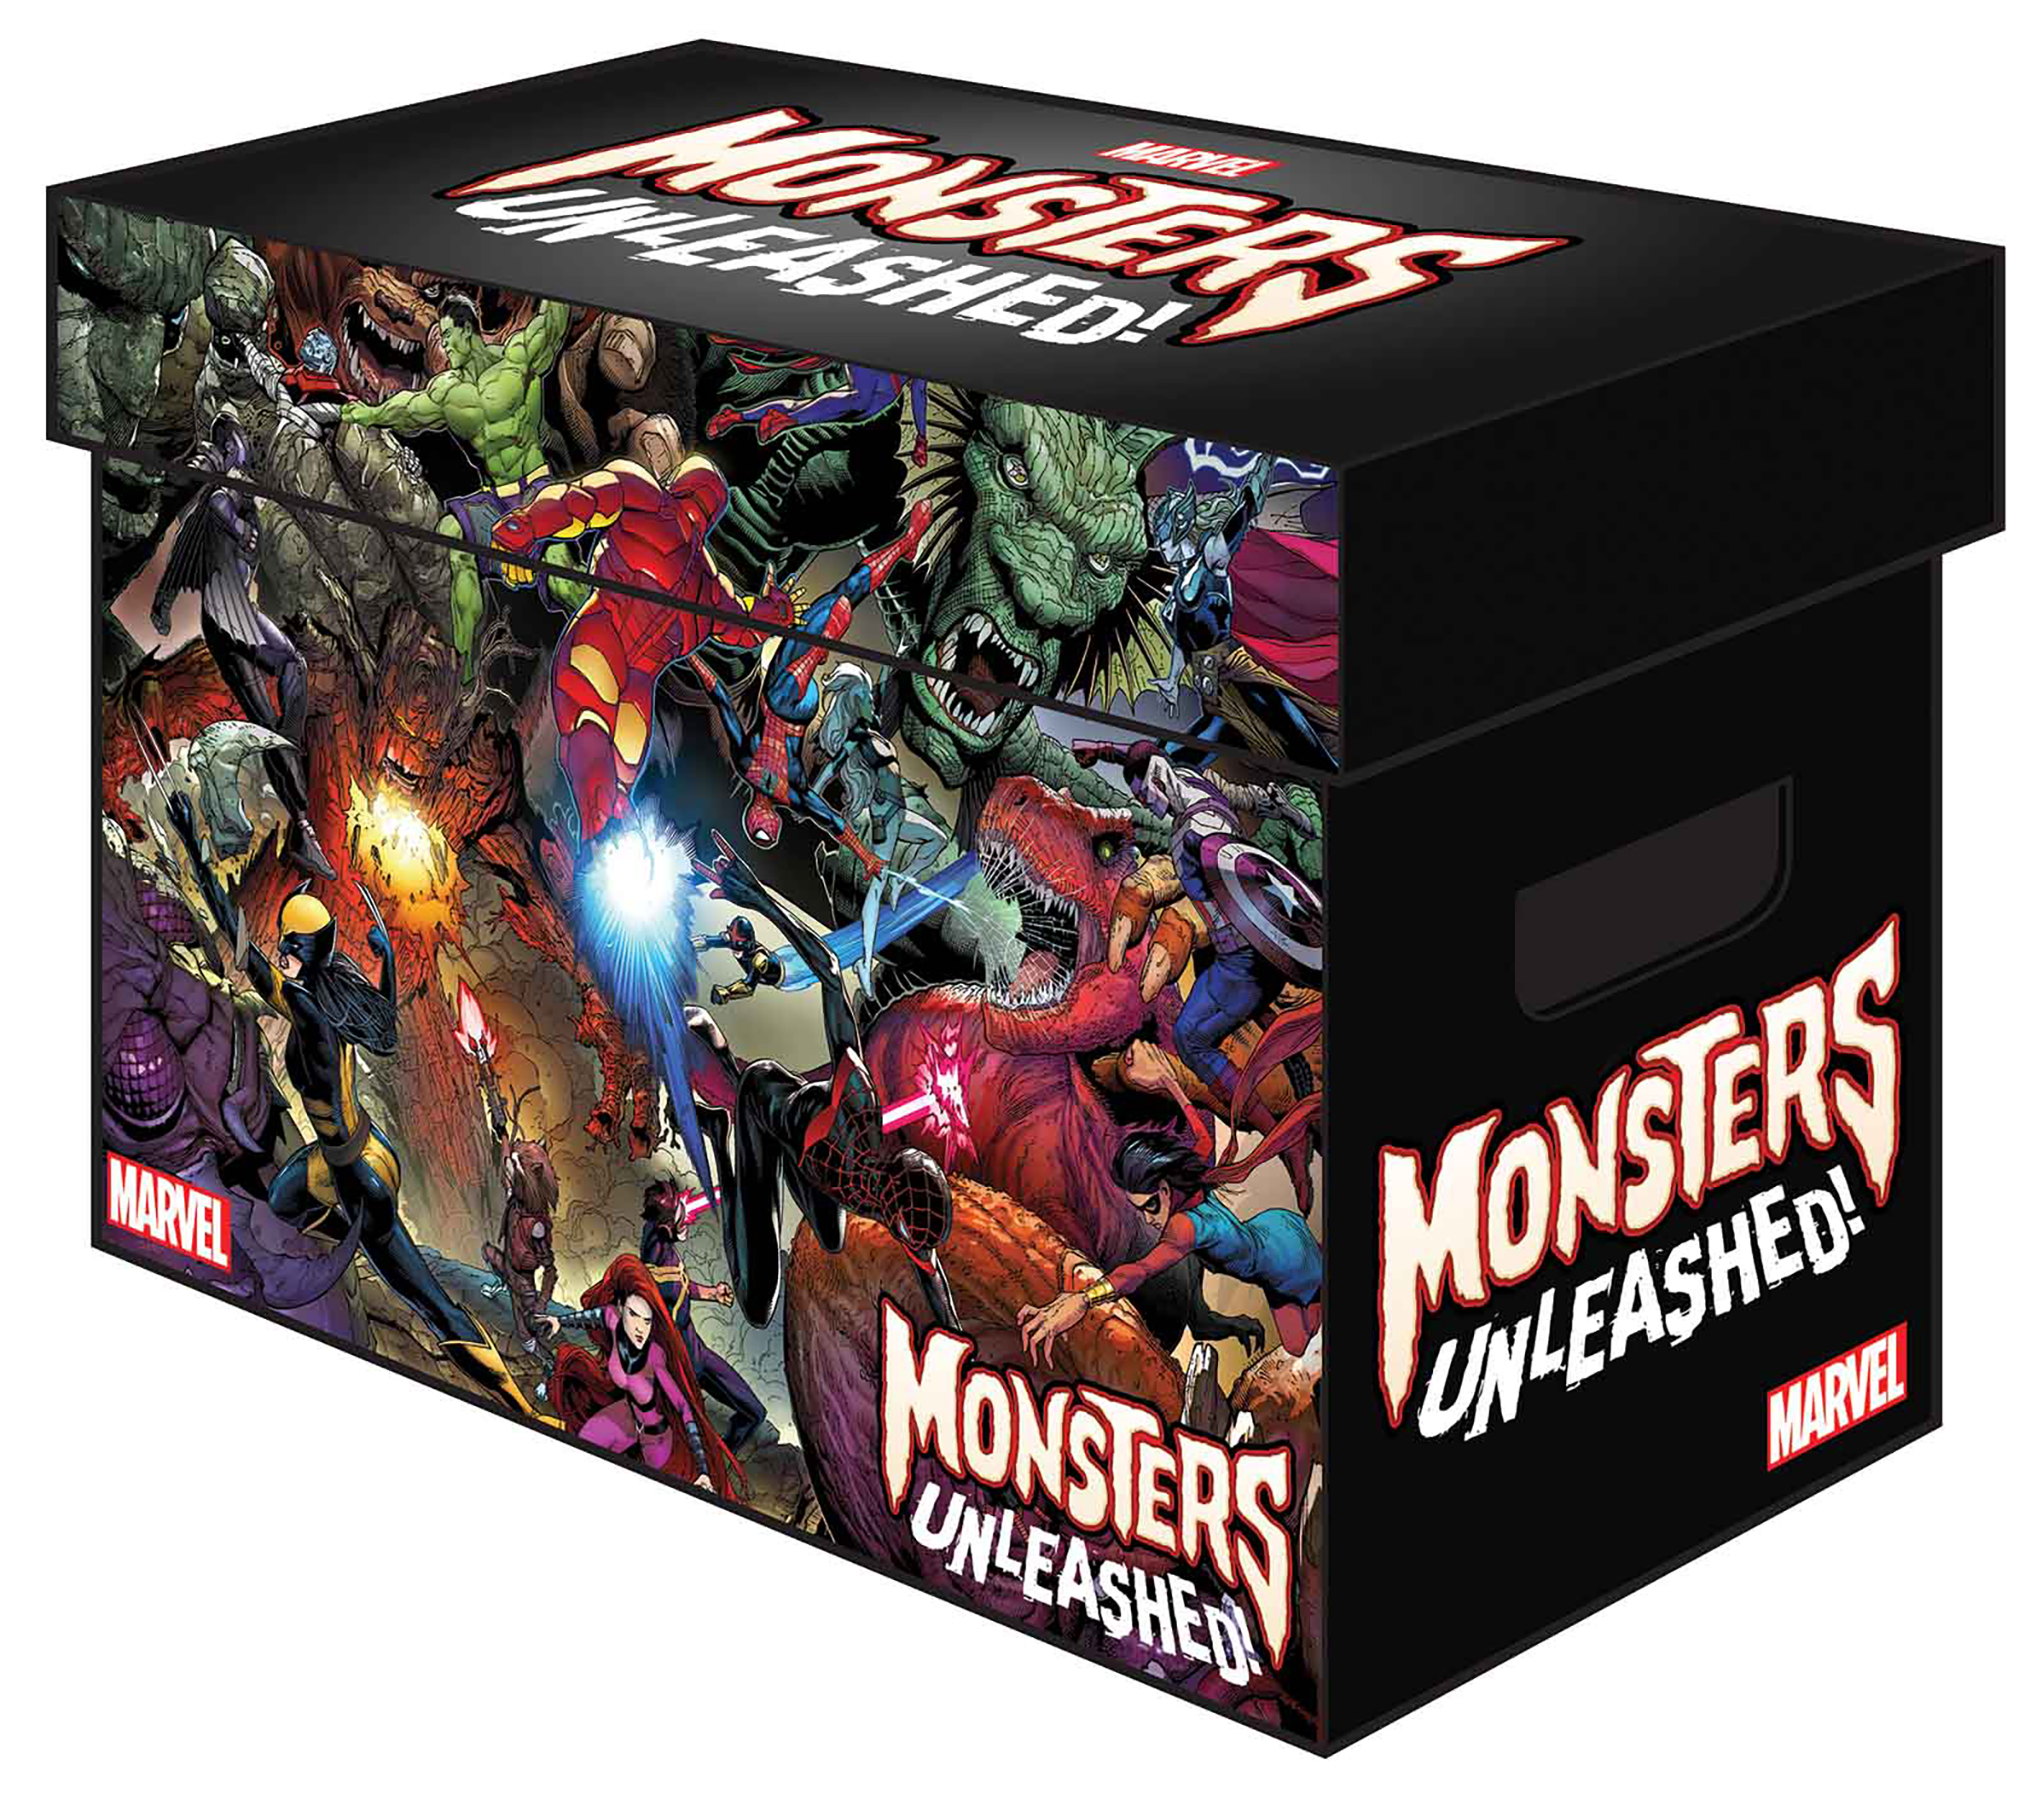 MARVEL GRAPHIC COMIC BOXES MONSTERS UNLEASHED (BUNDLE OF 5)